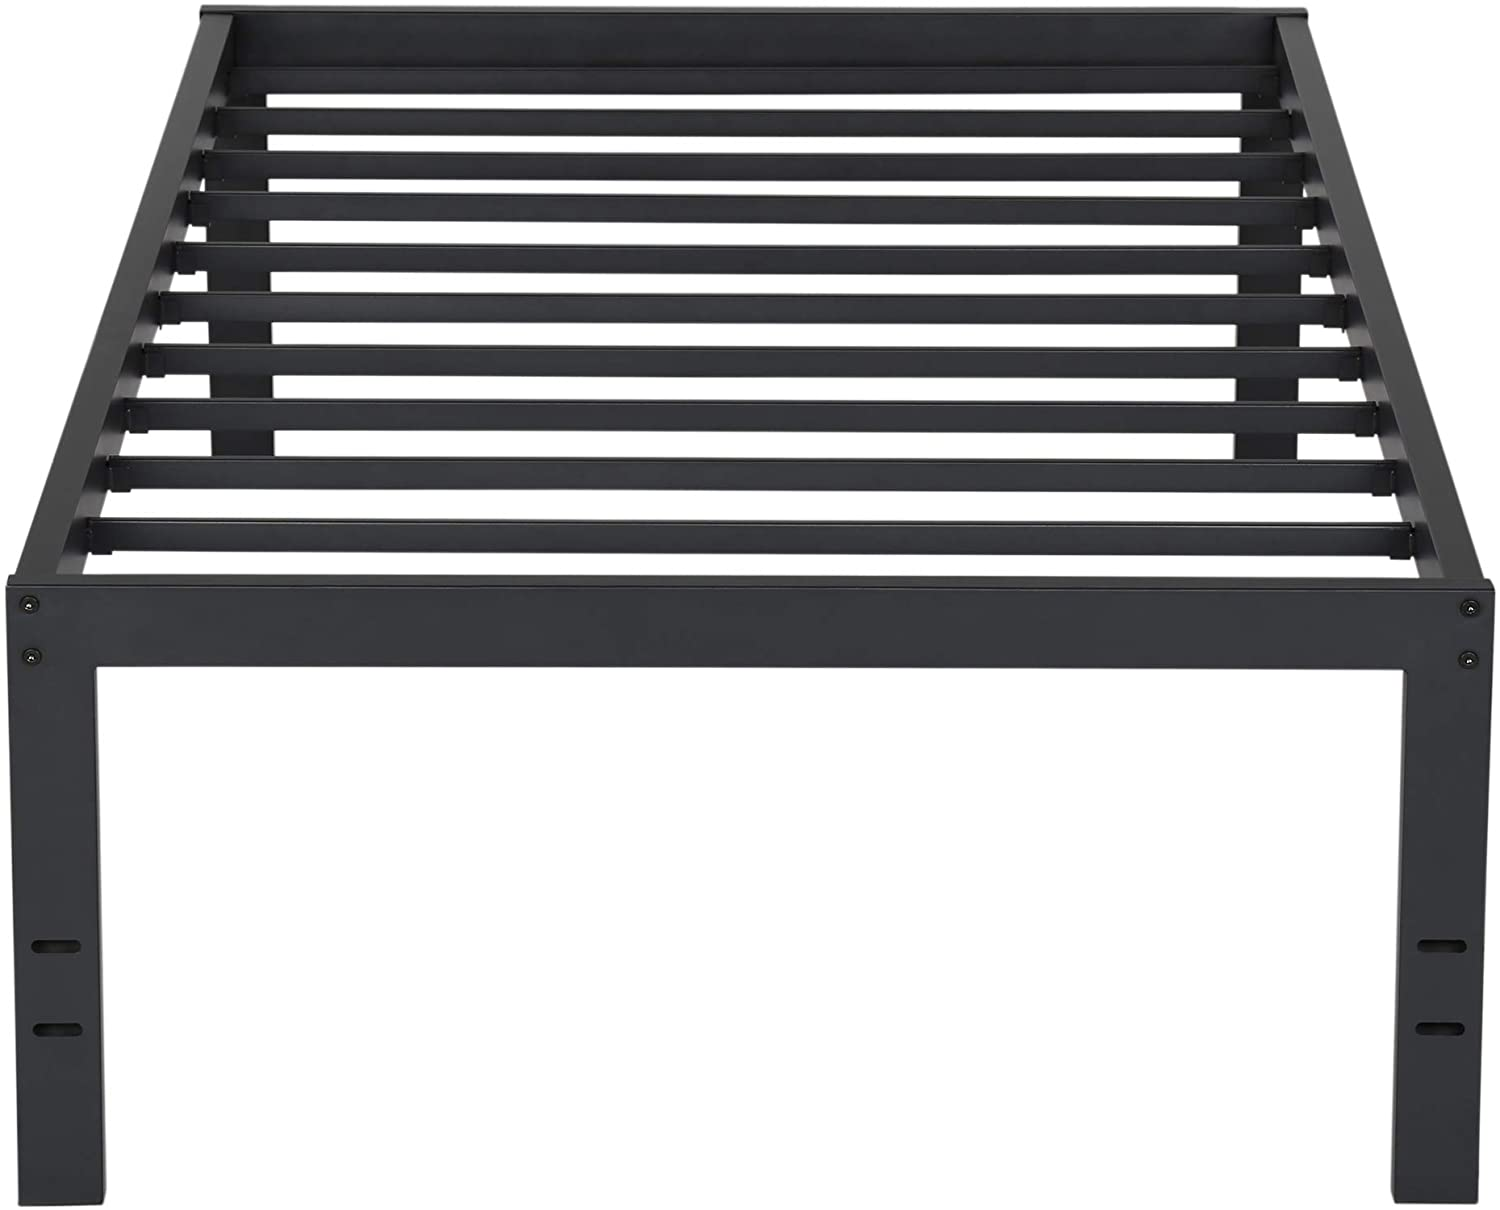 PrimaSleep 18 Inch Tall Metal Bed Frame Dura Steel Slat Anti-Slip Support No Box Spring Needed Black Twin,